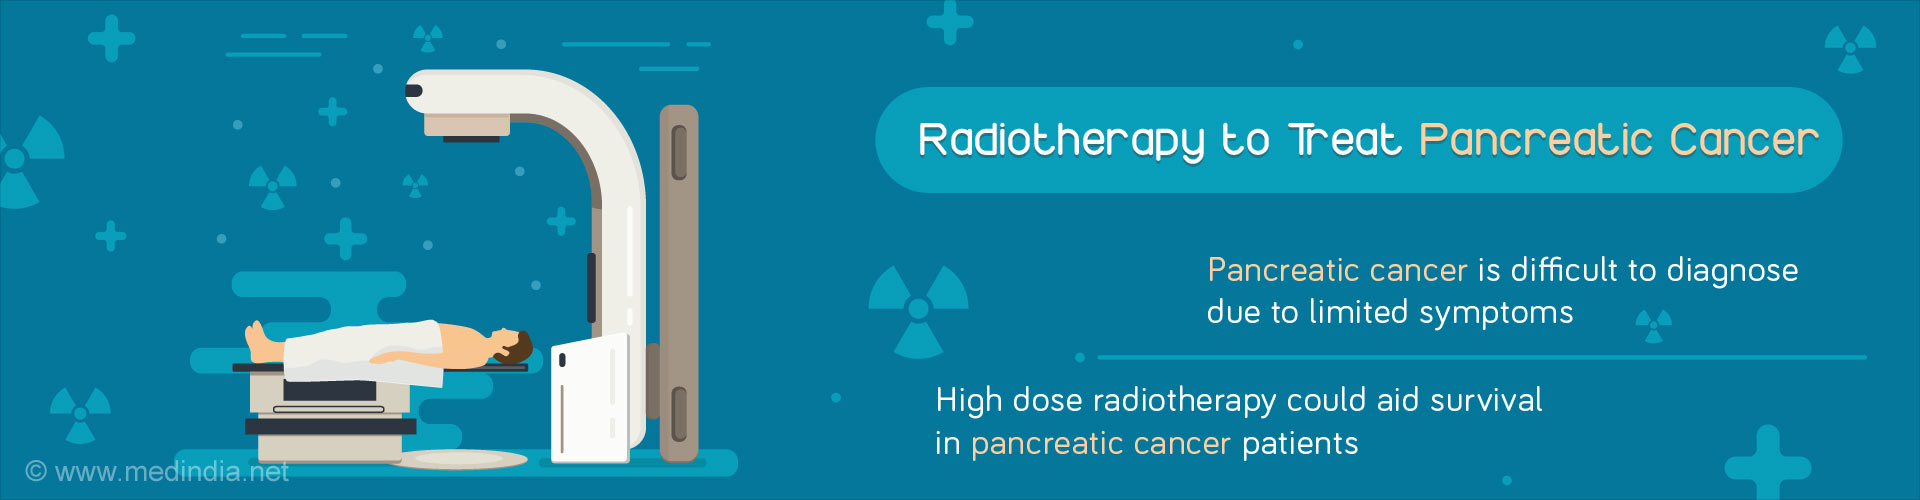 Role of Radiotherapy in Pancreatic Cancer